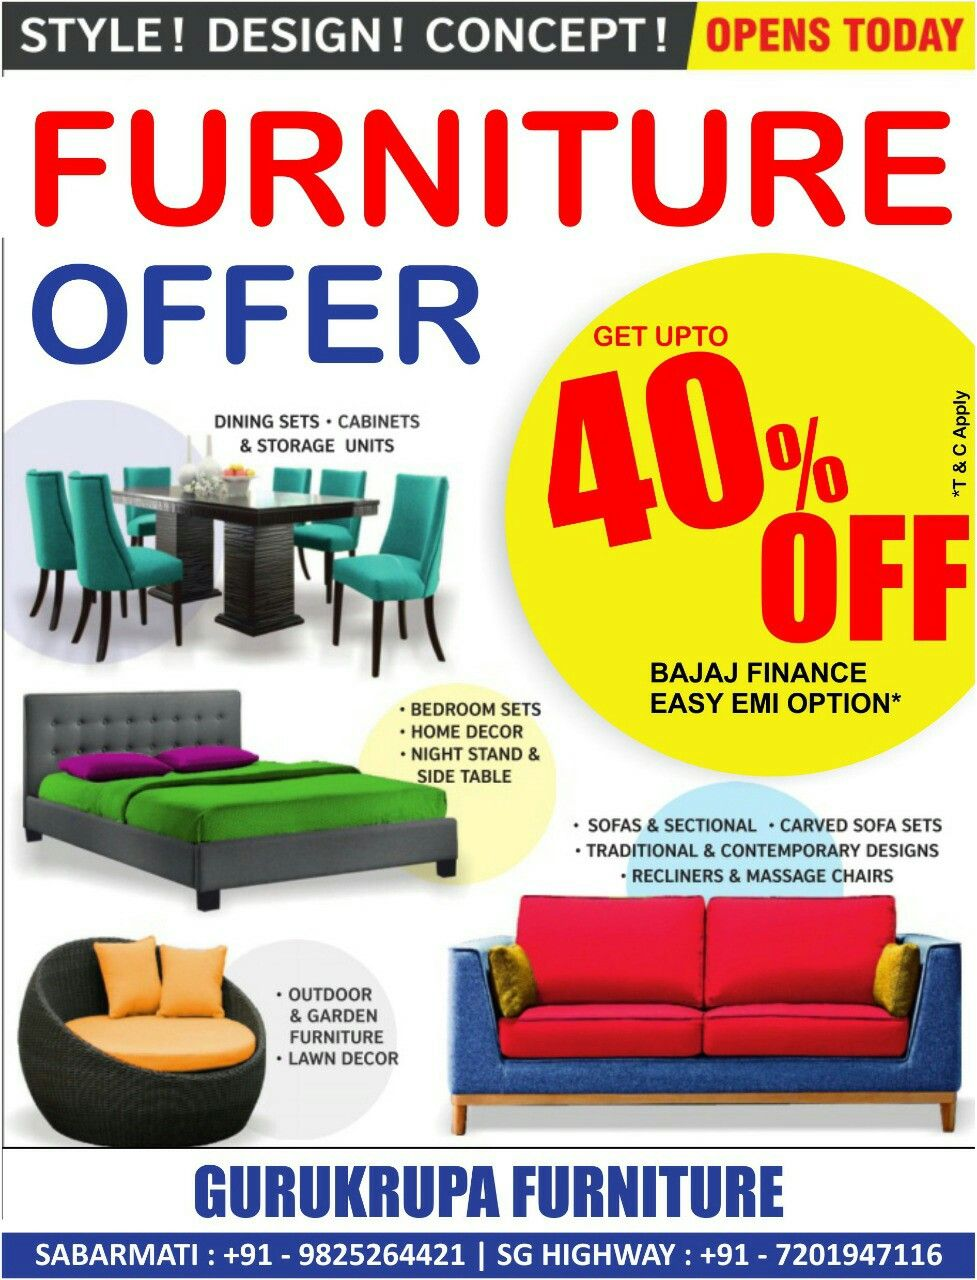 Get Upto 40 Off Easy Emi Available Visitus Gurukrupa Furniture Ahmedabad Sabarmati 9825264421 Sg Highway Carved Sofa Furniture Offers Dining Storage